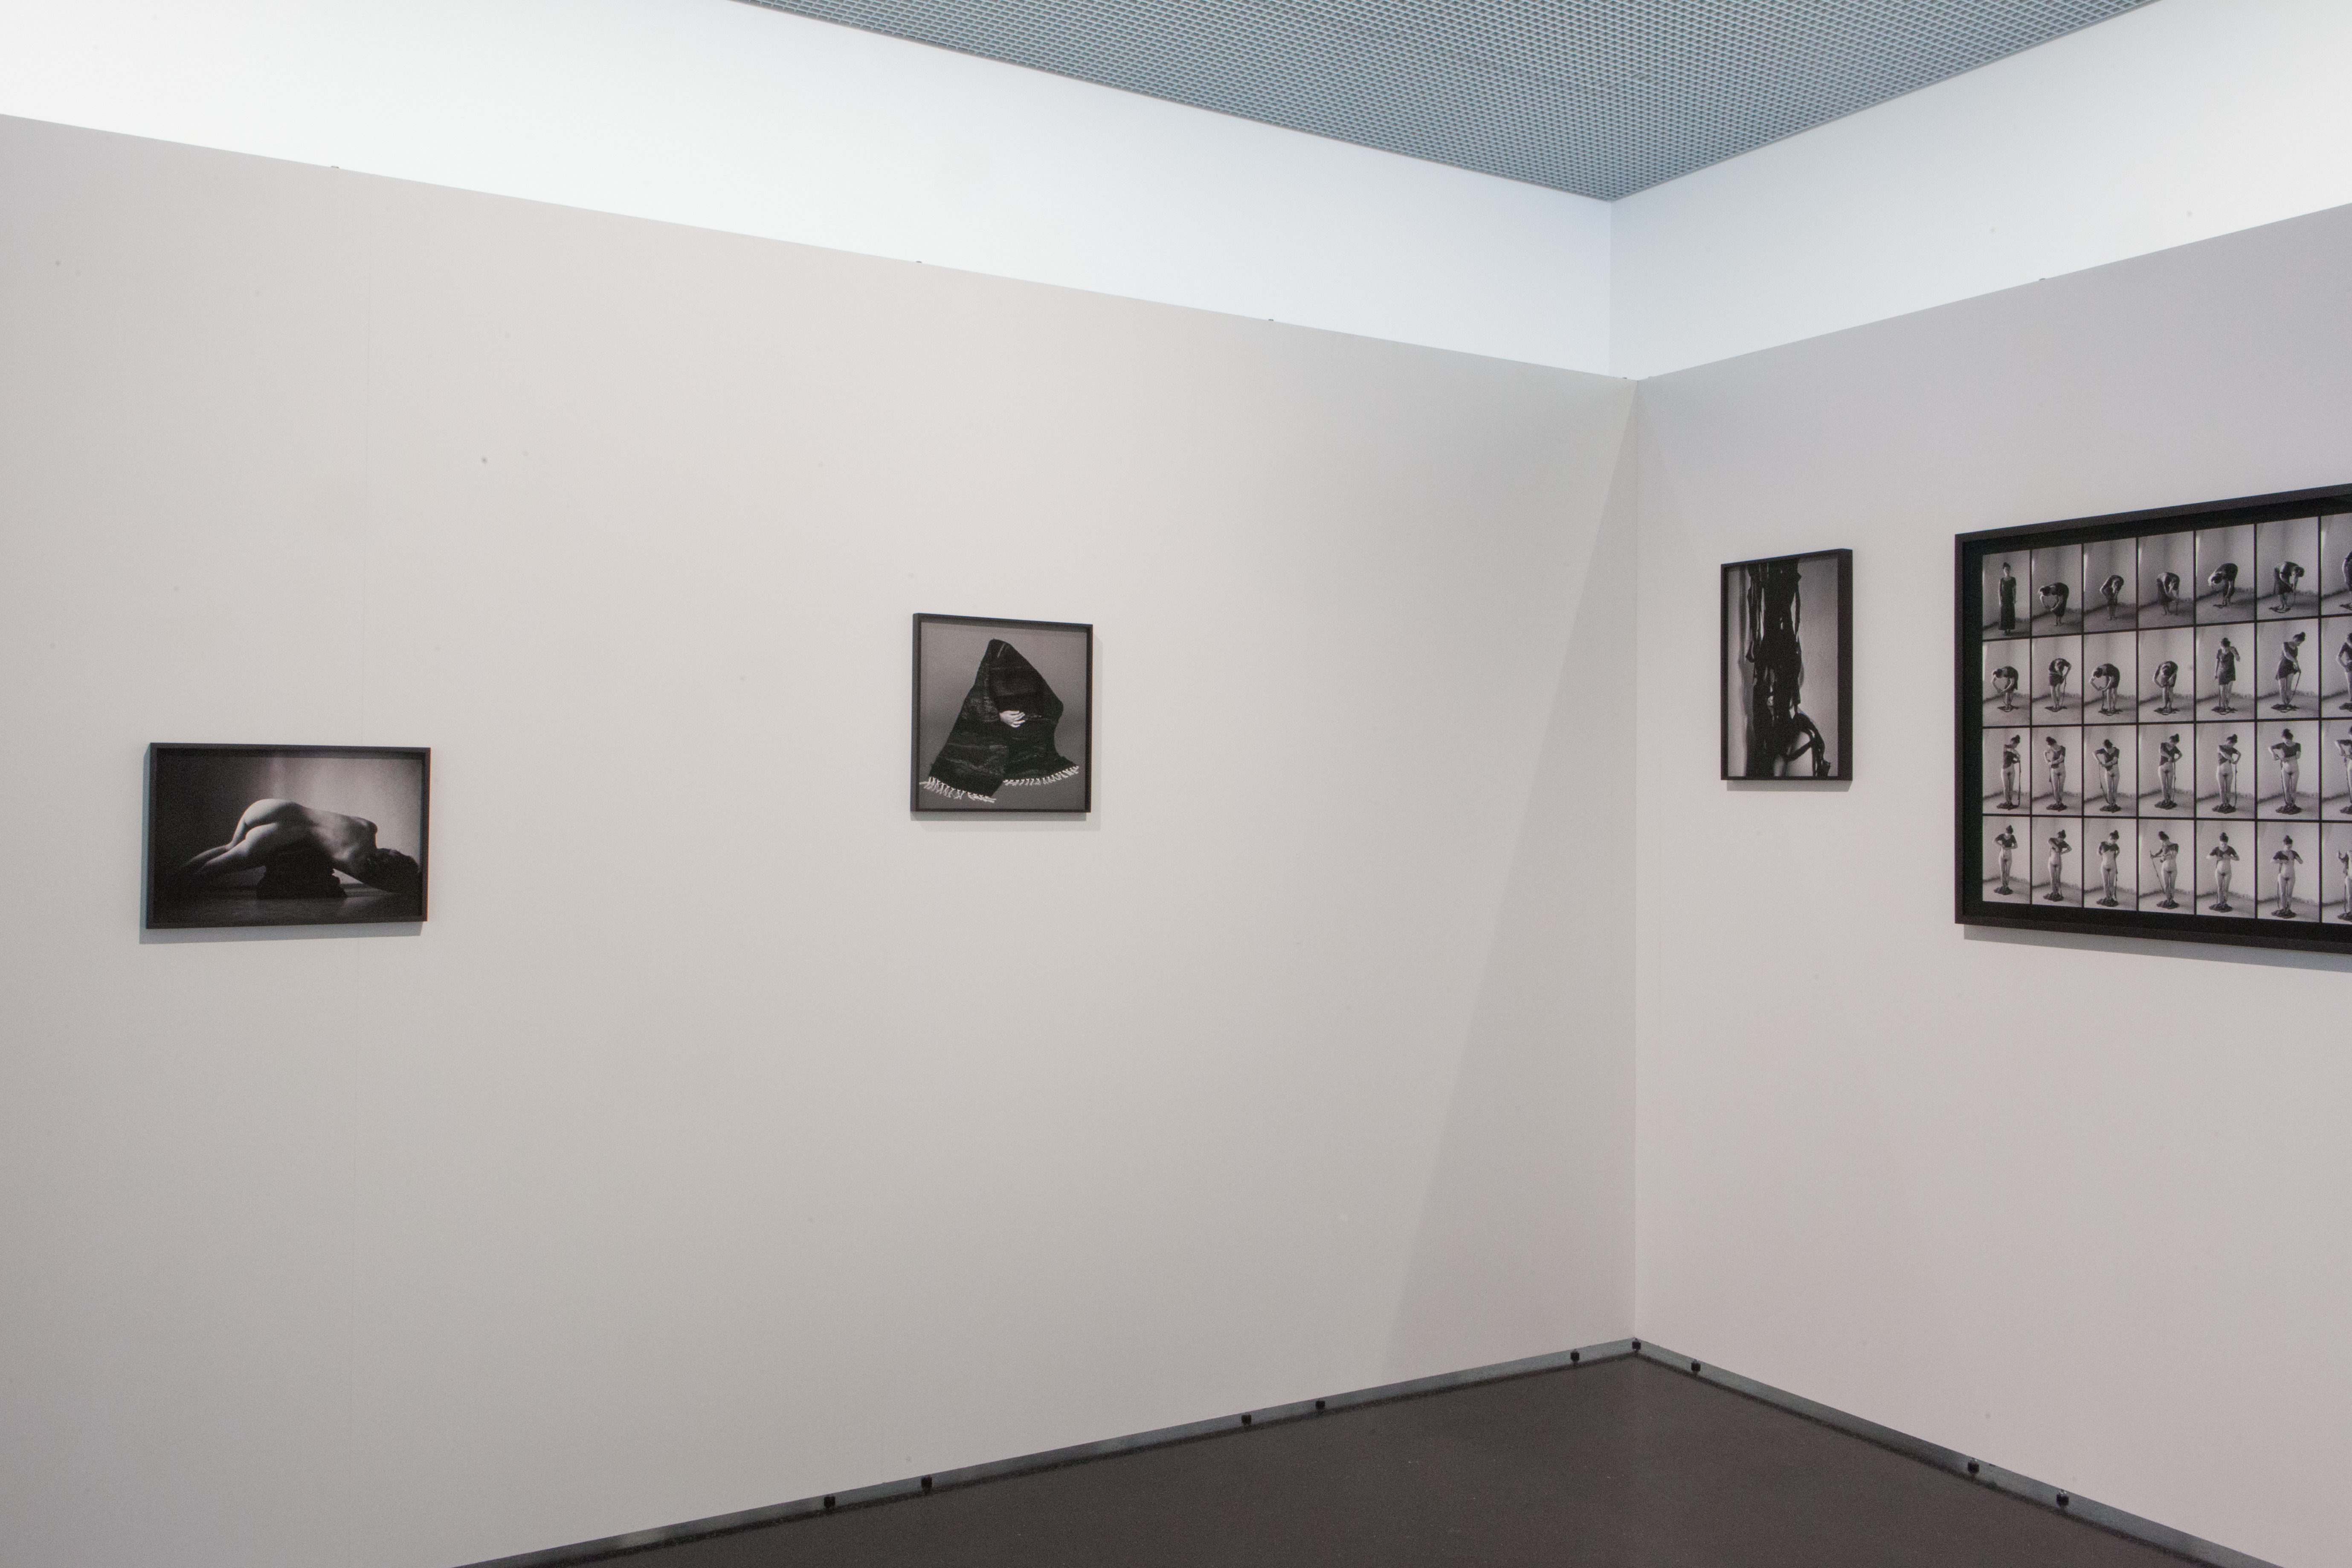 Exhibition View of Hilla Kurki at Wiesbadener Fototage 2019